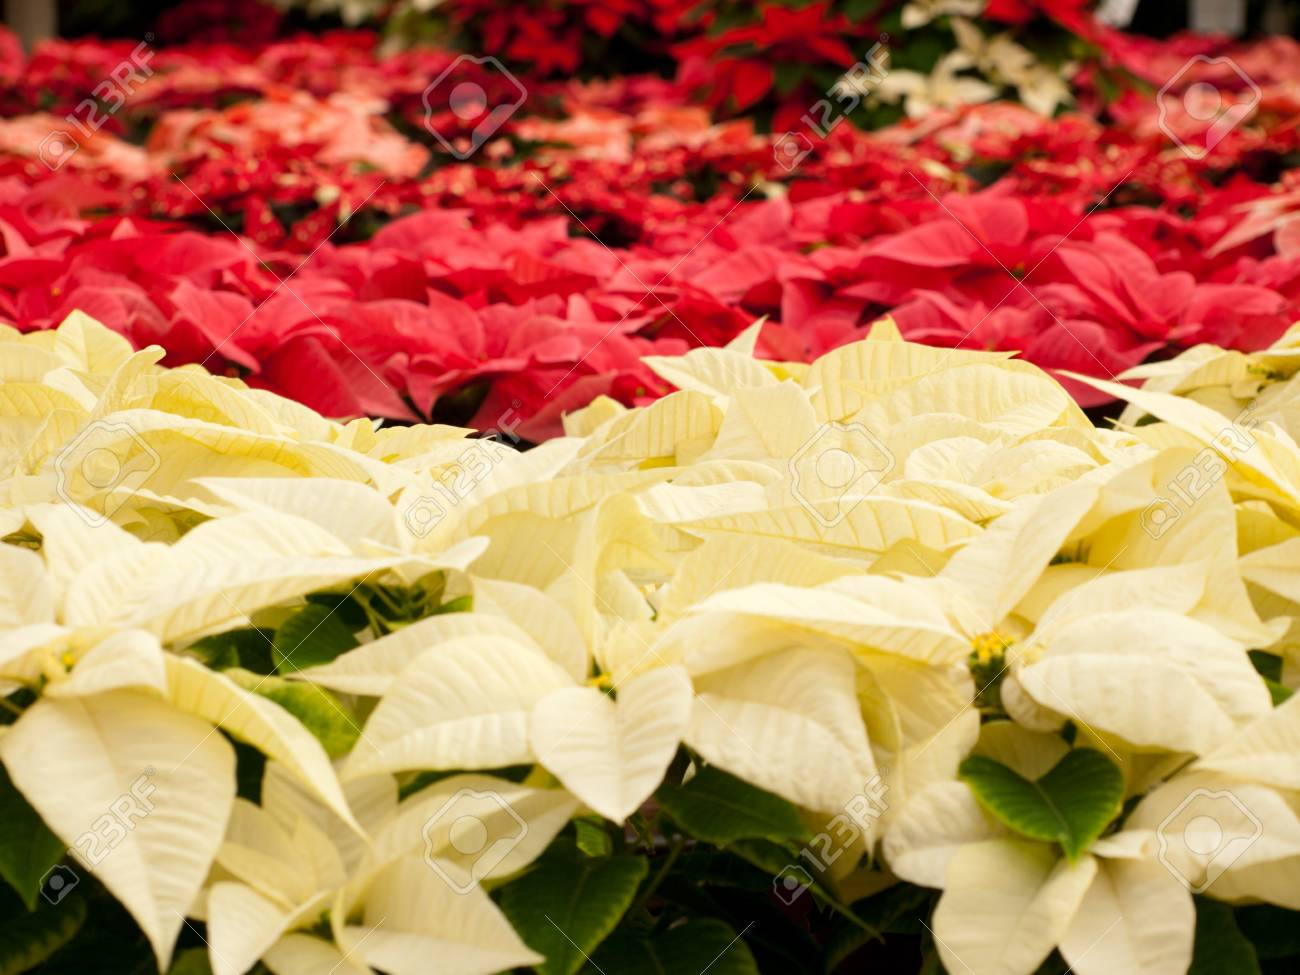 Rows Of Red And White Poinsettia Plants Being Grown At A Colorado